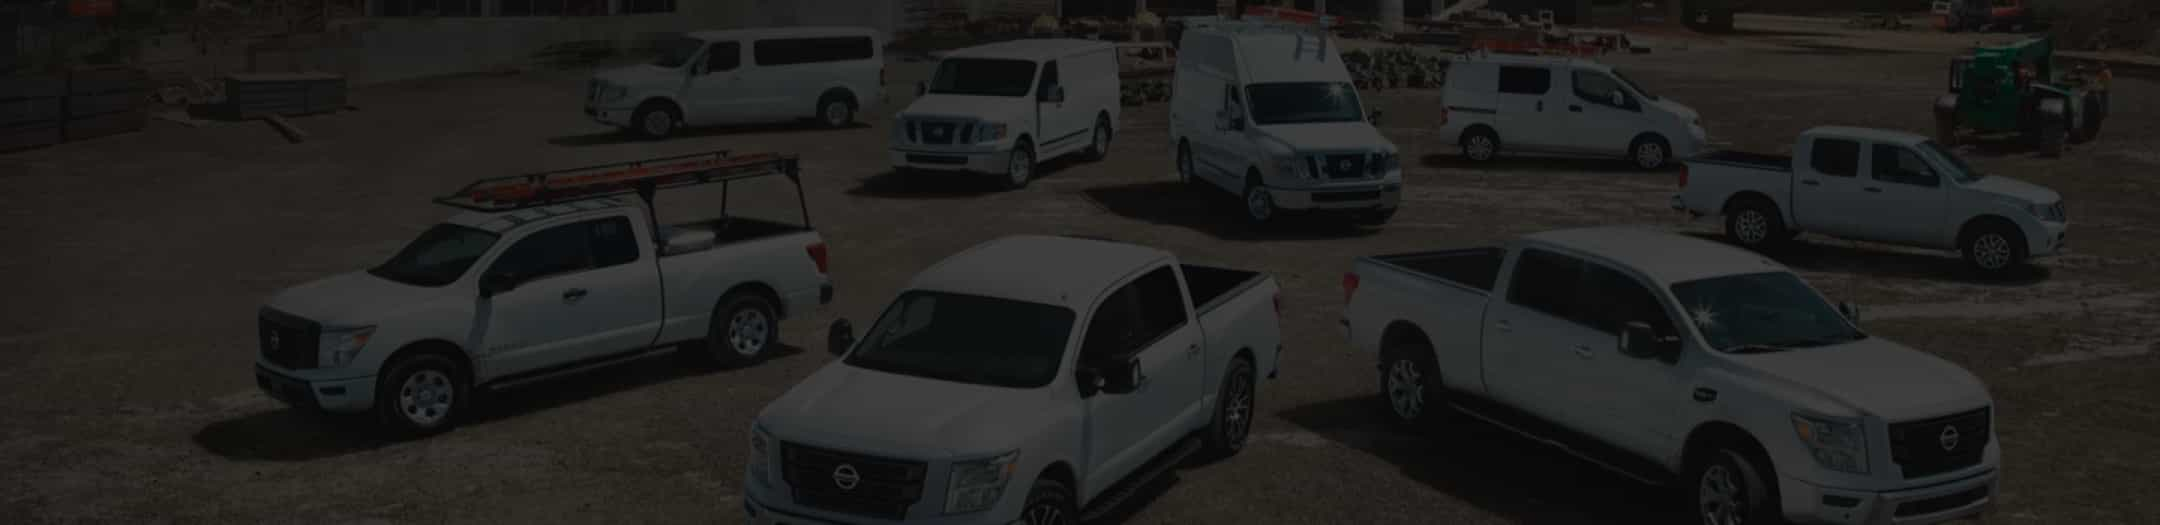 Lineup of Nissan commercial vehicles